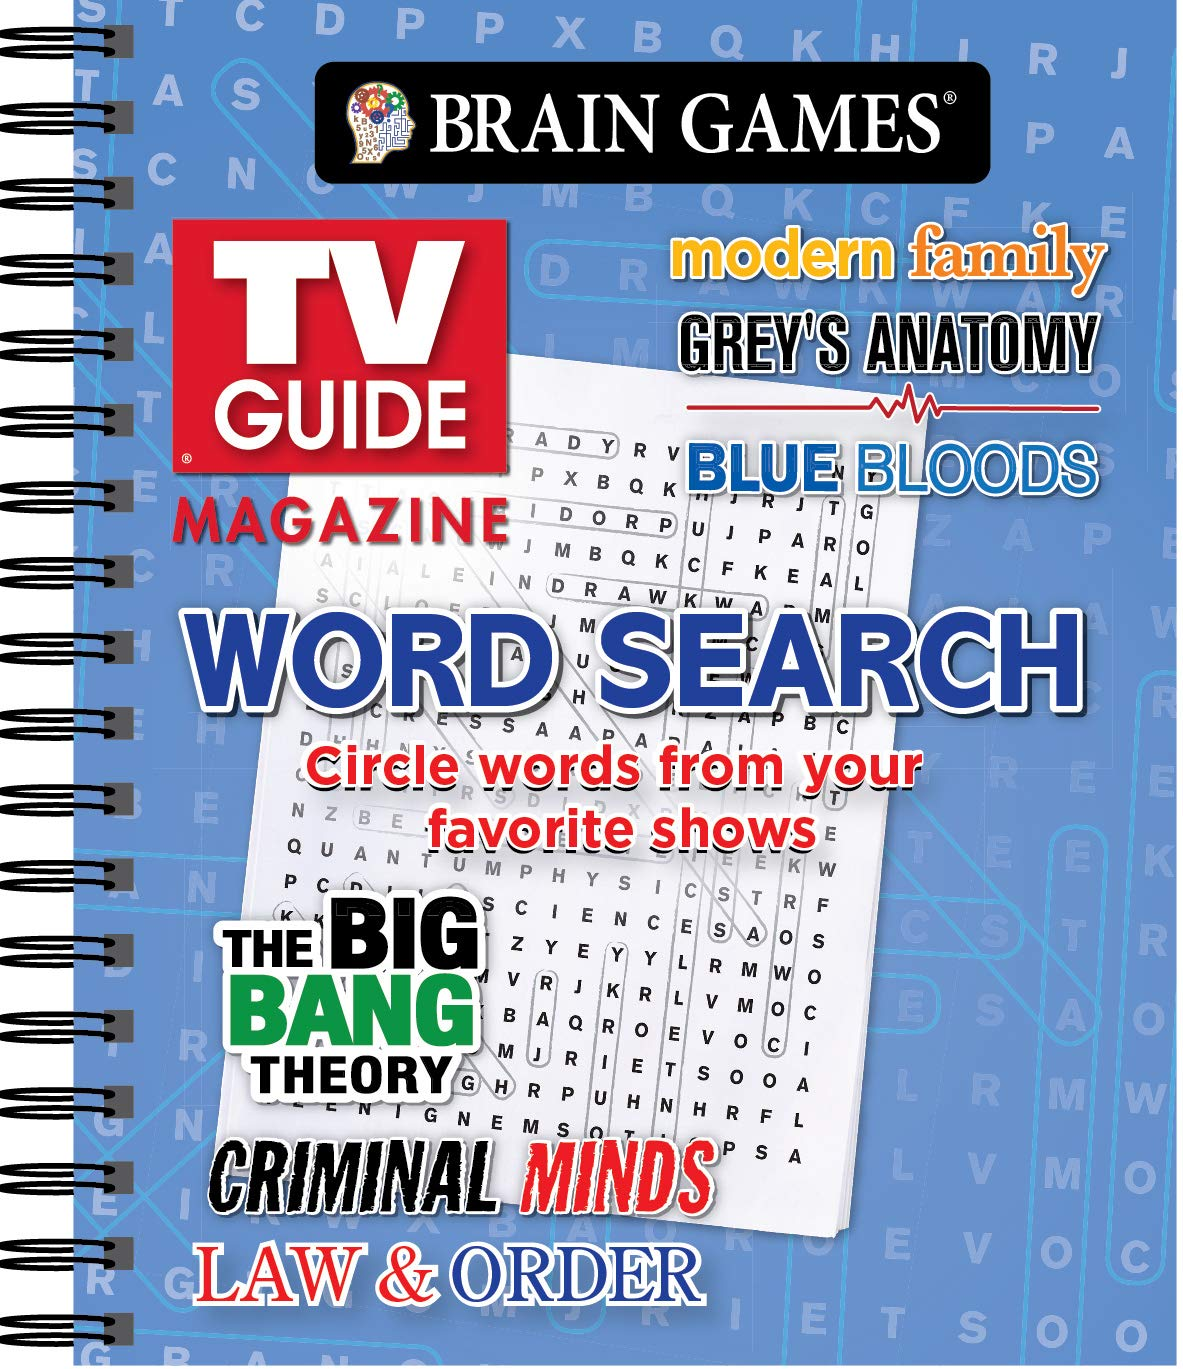 Brain Games Guide Magazine Search product image